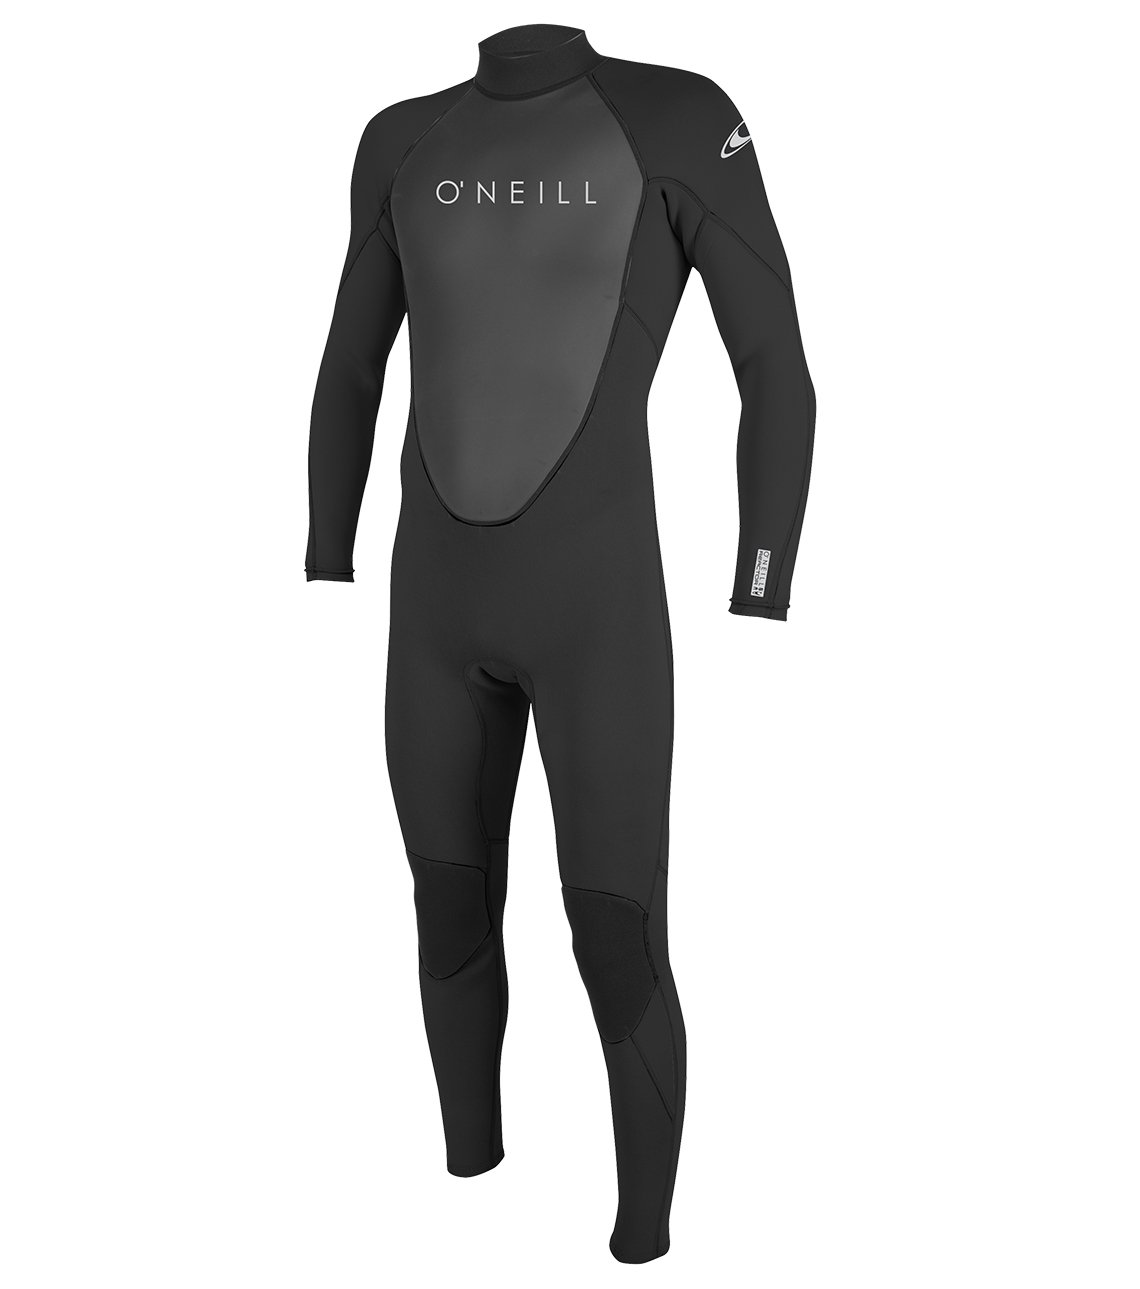 O'Neill Men's Reactor II 3/2mm Back Zip Full Wetsuit, Black, X-Small by O'Neill Wetsuits (Image #1)